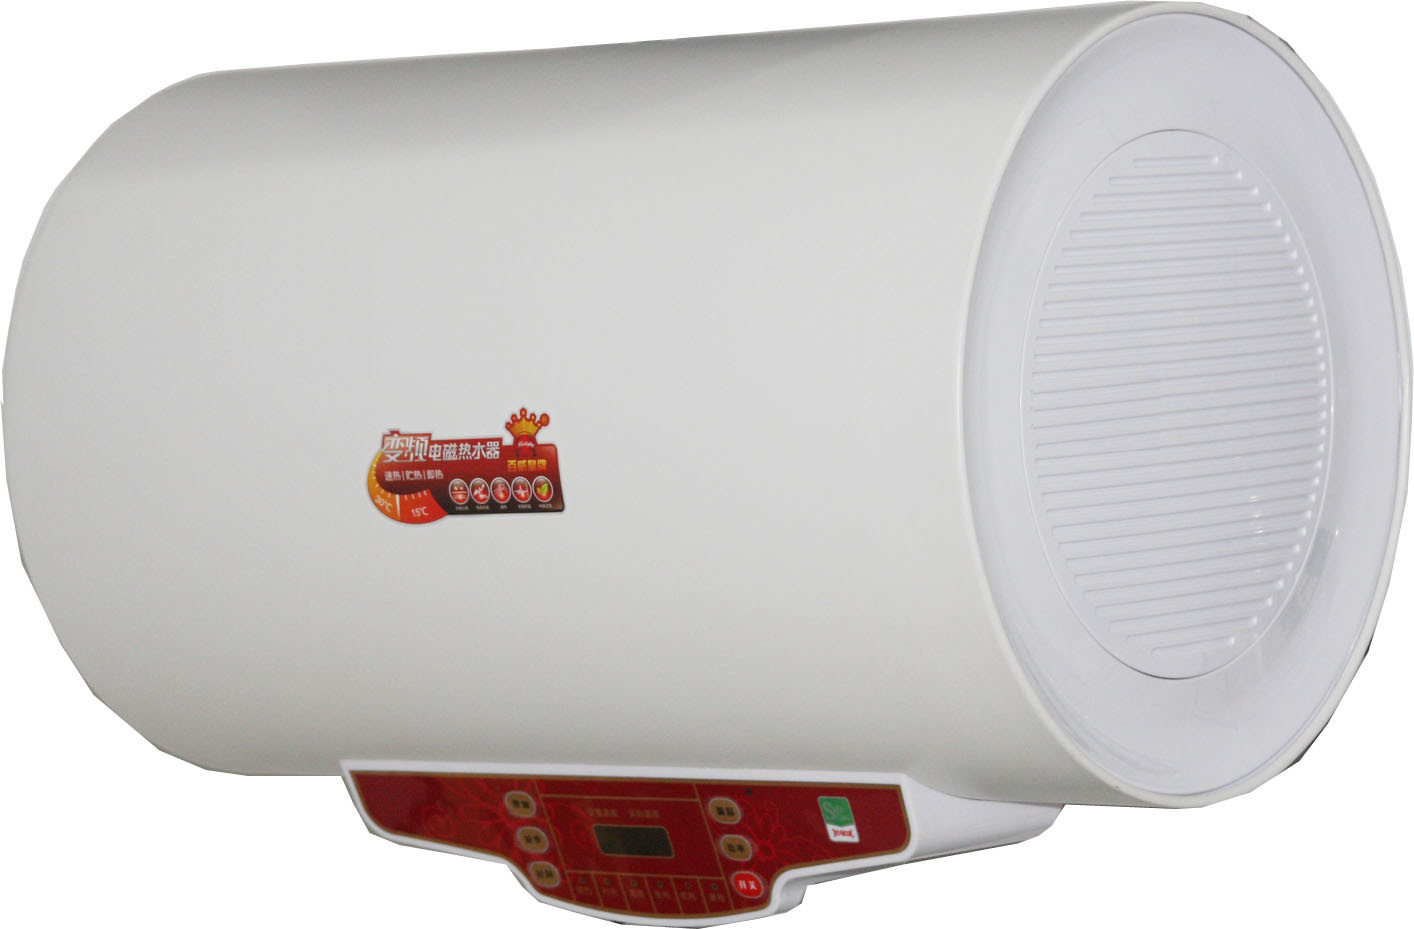 Induction Water Heater ~ China induction water heater dszf c